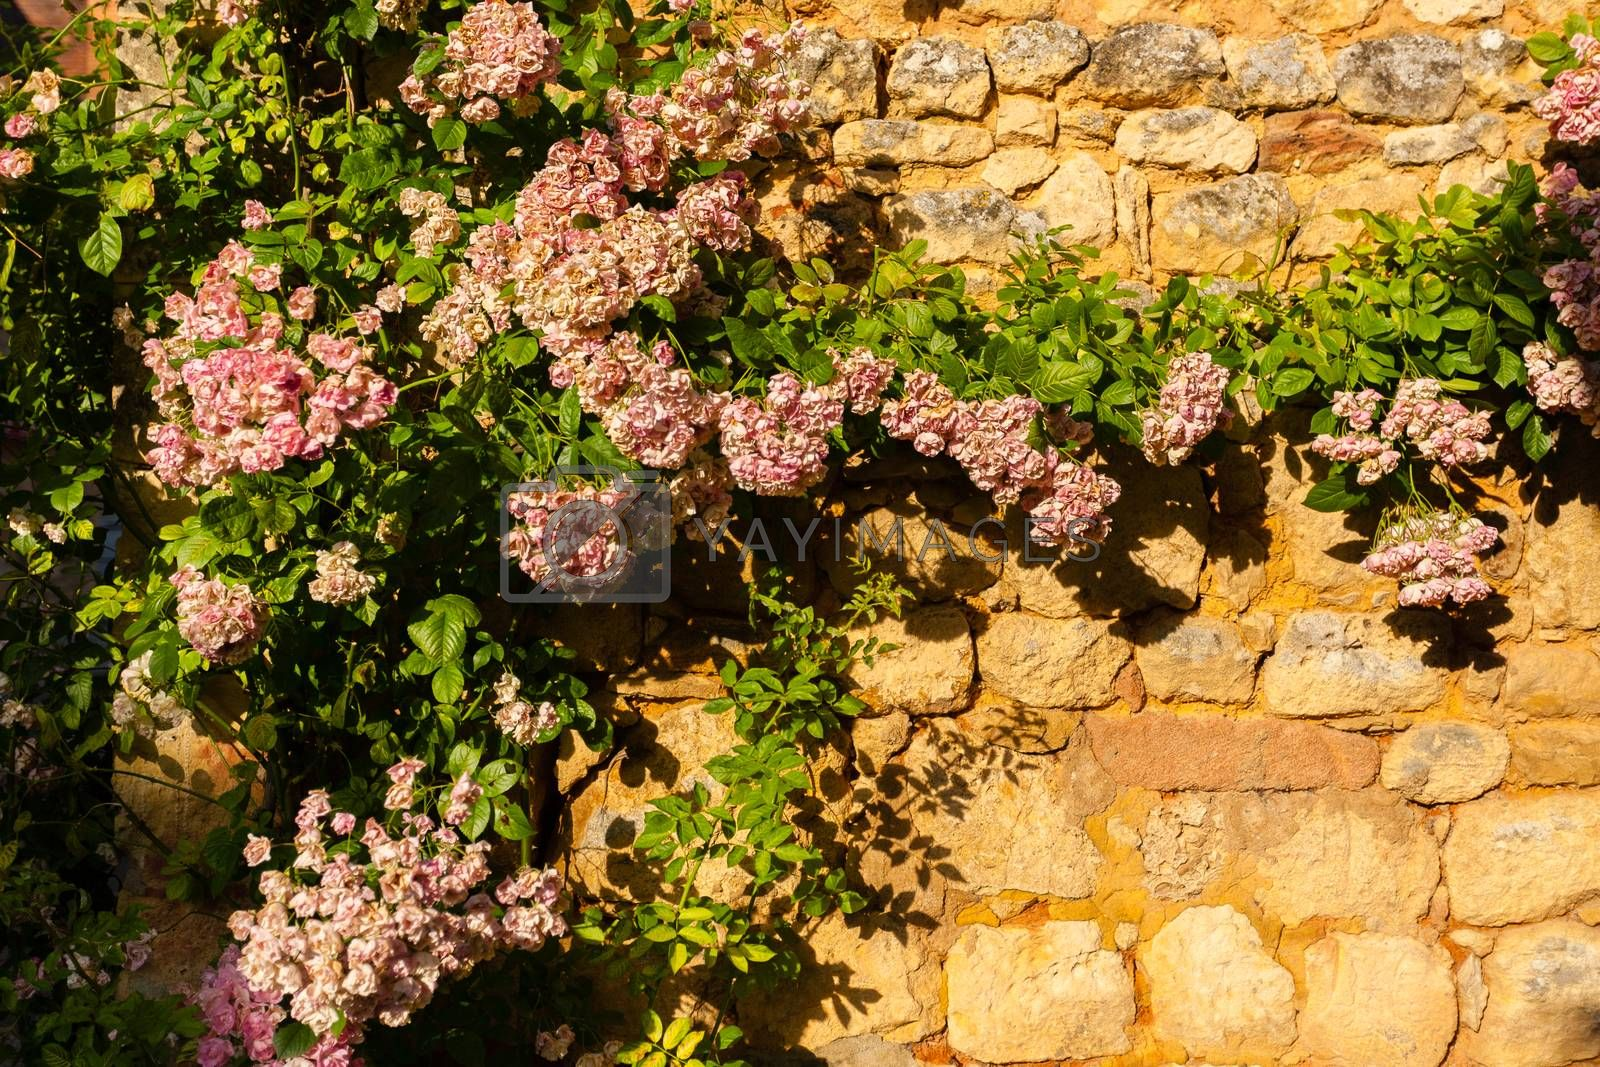 Rose climbing plant in a stoned wall in the Dordogne region of France